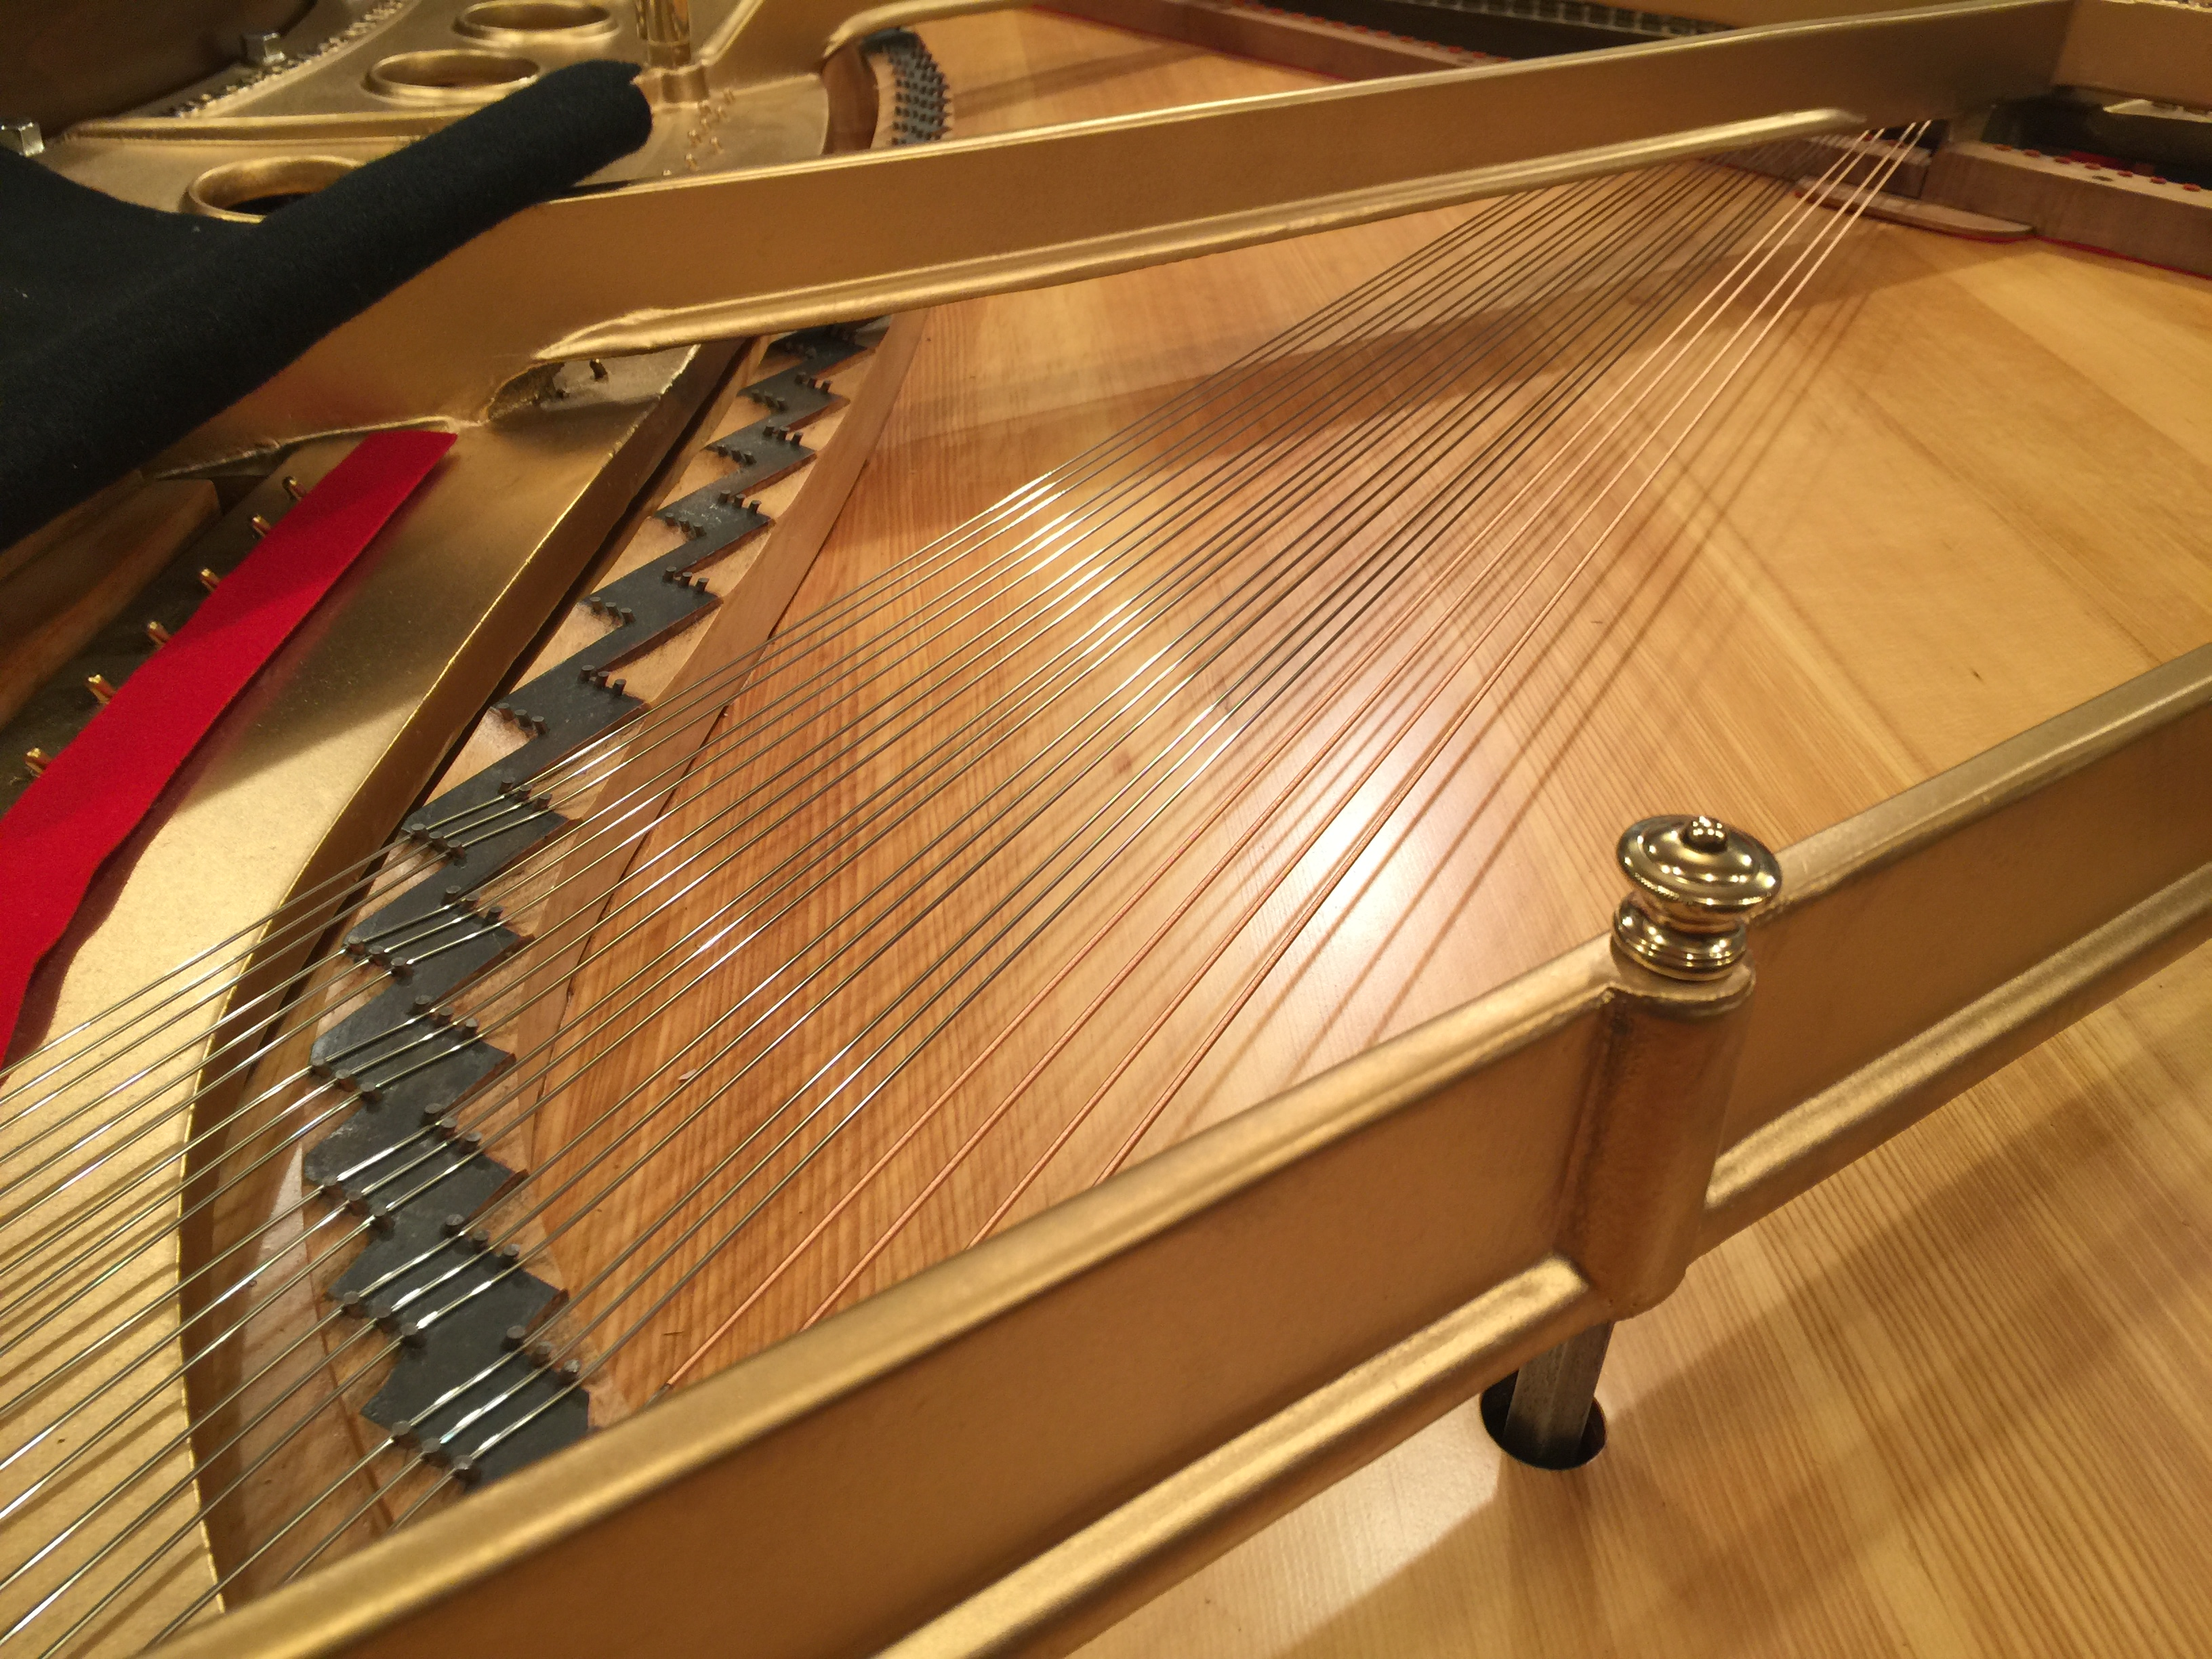 Ace Piano Tunes and Repairs Pianos in Oakland County Michigan and areas like Troy, Bloomfield, Rochester, Canton, Waterford and surrounding areas.